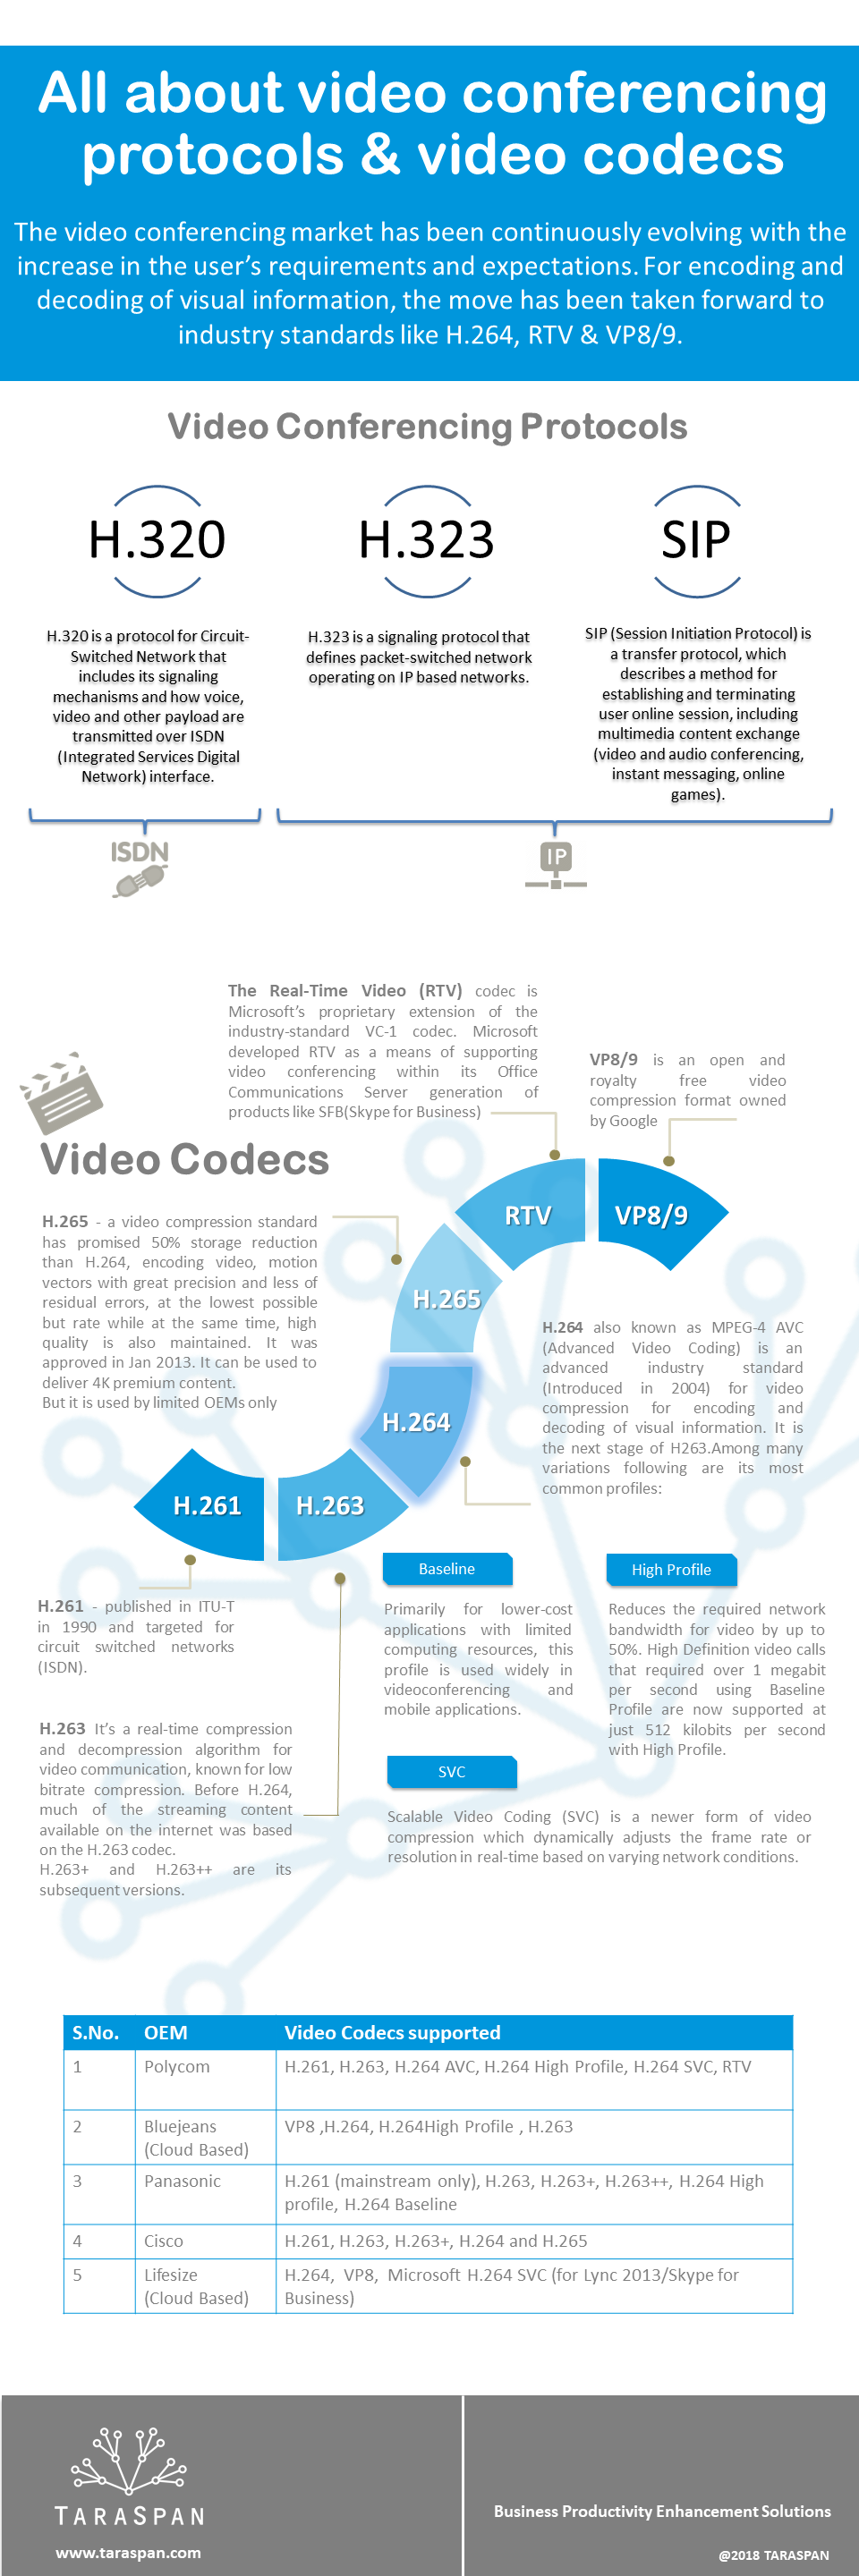 All about video conferencing protocols and video codecs